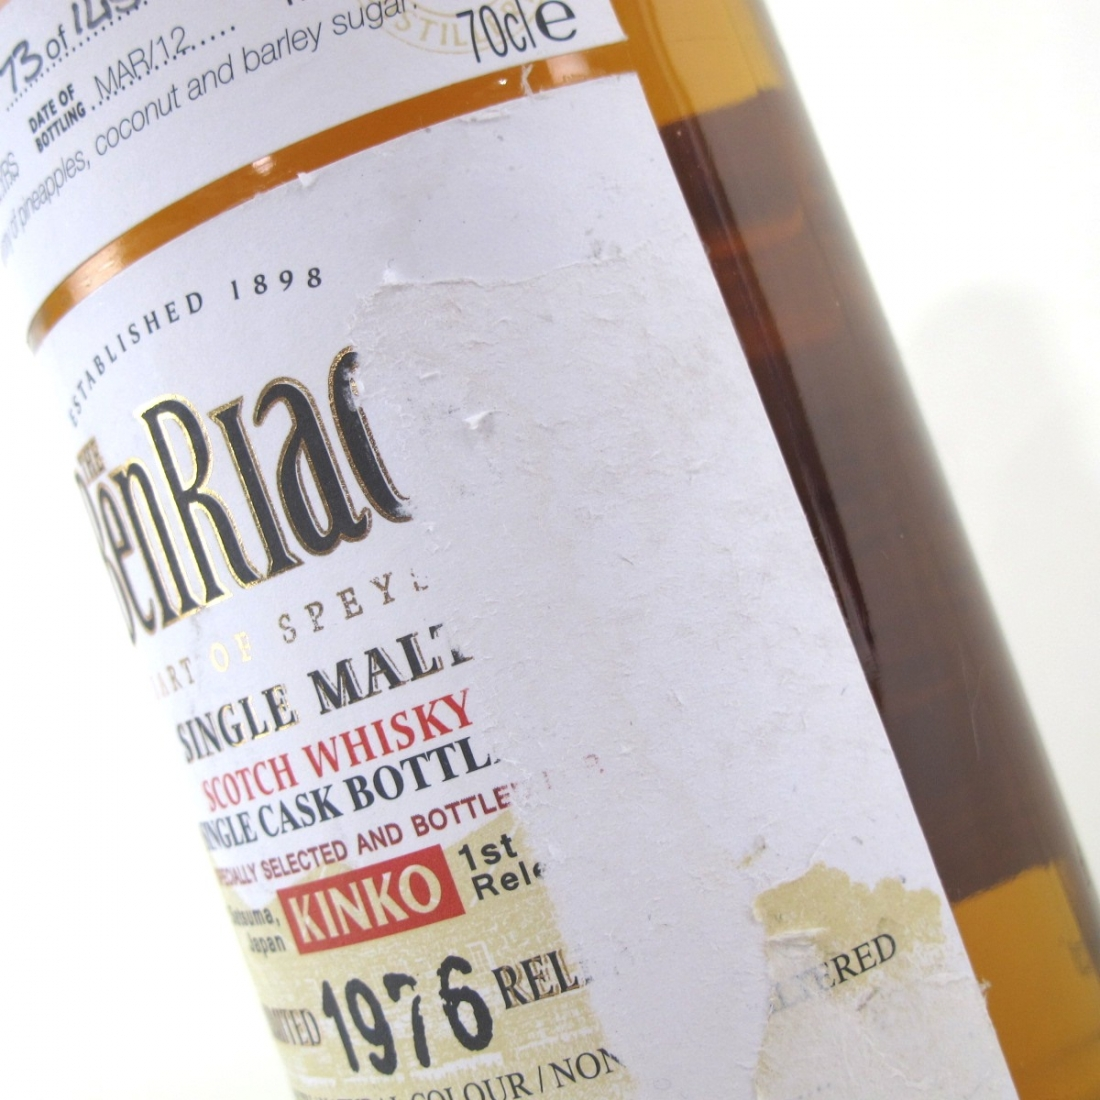 Benriach 1976 Single Cask 35 Year Old #3028 / Kinko Exclusive